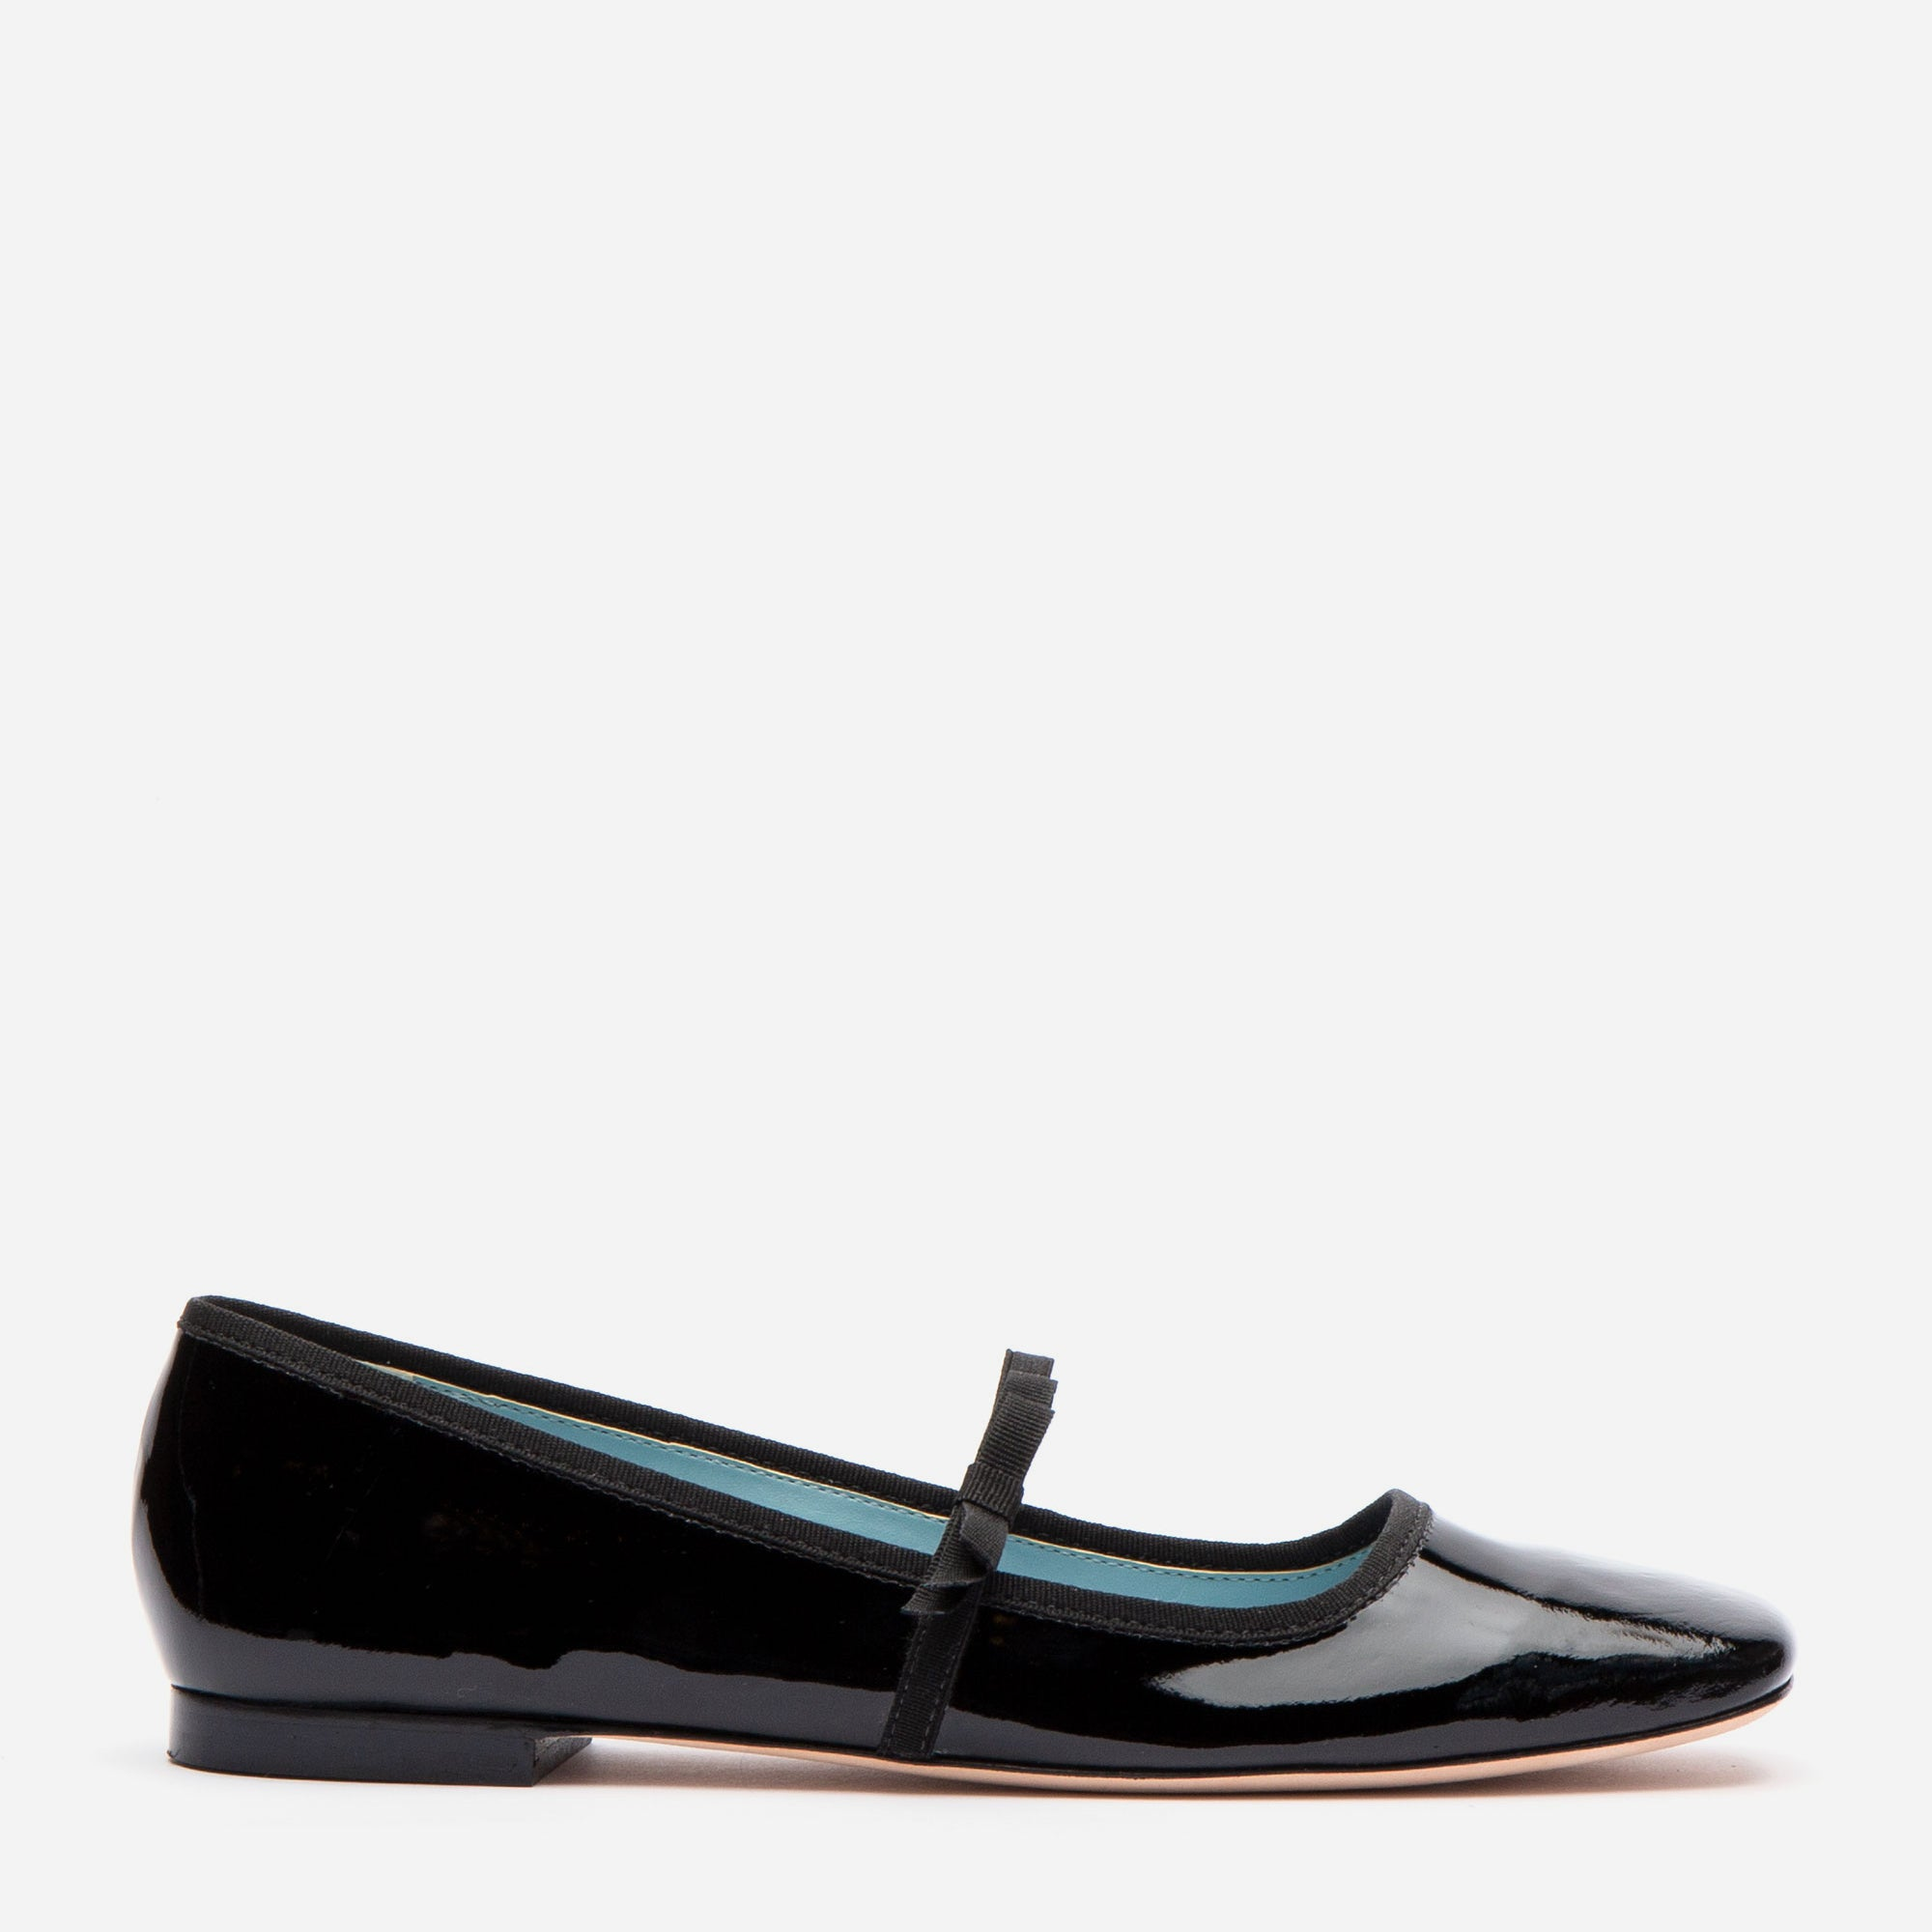 Jude Mary Jane Flats Black Patent